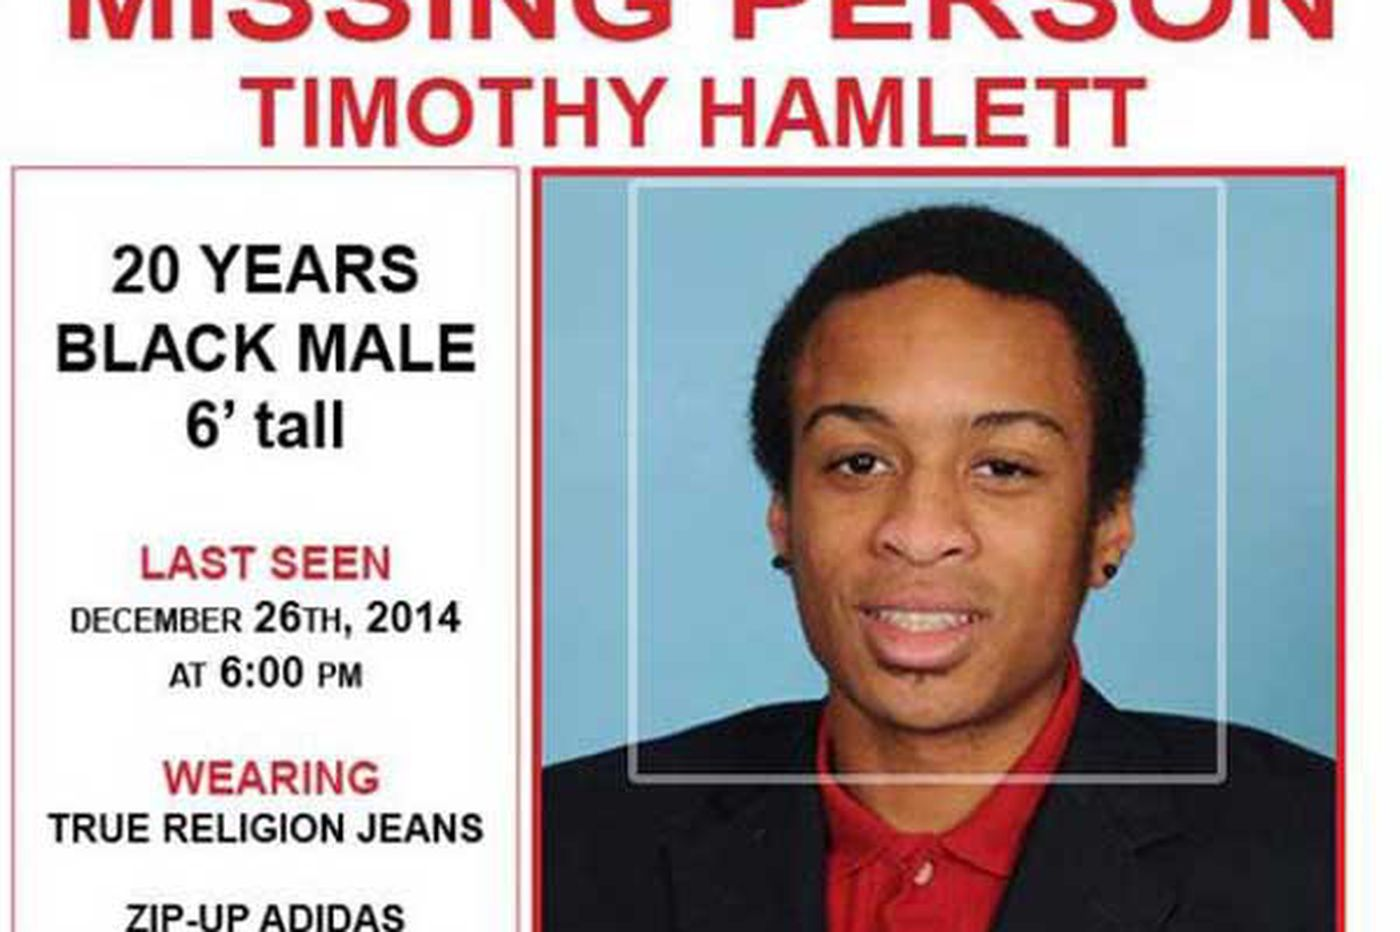 Ex-Penn track athlete reported missing in N.J.